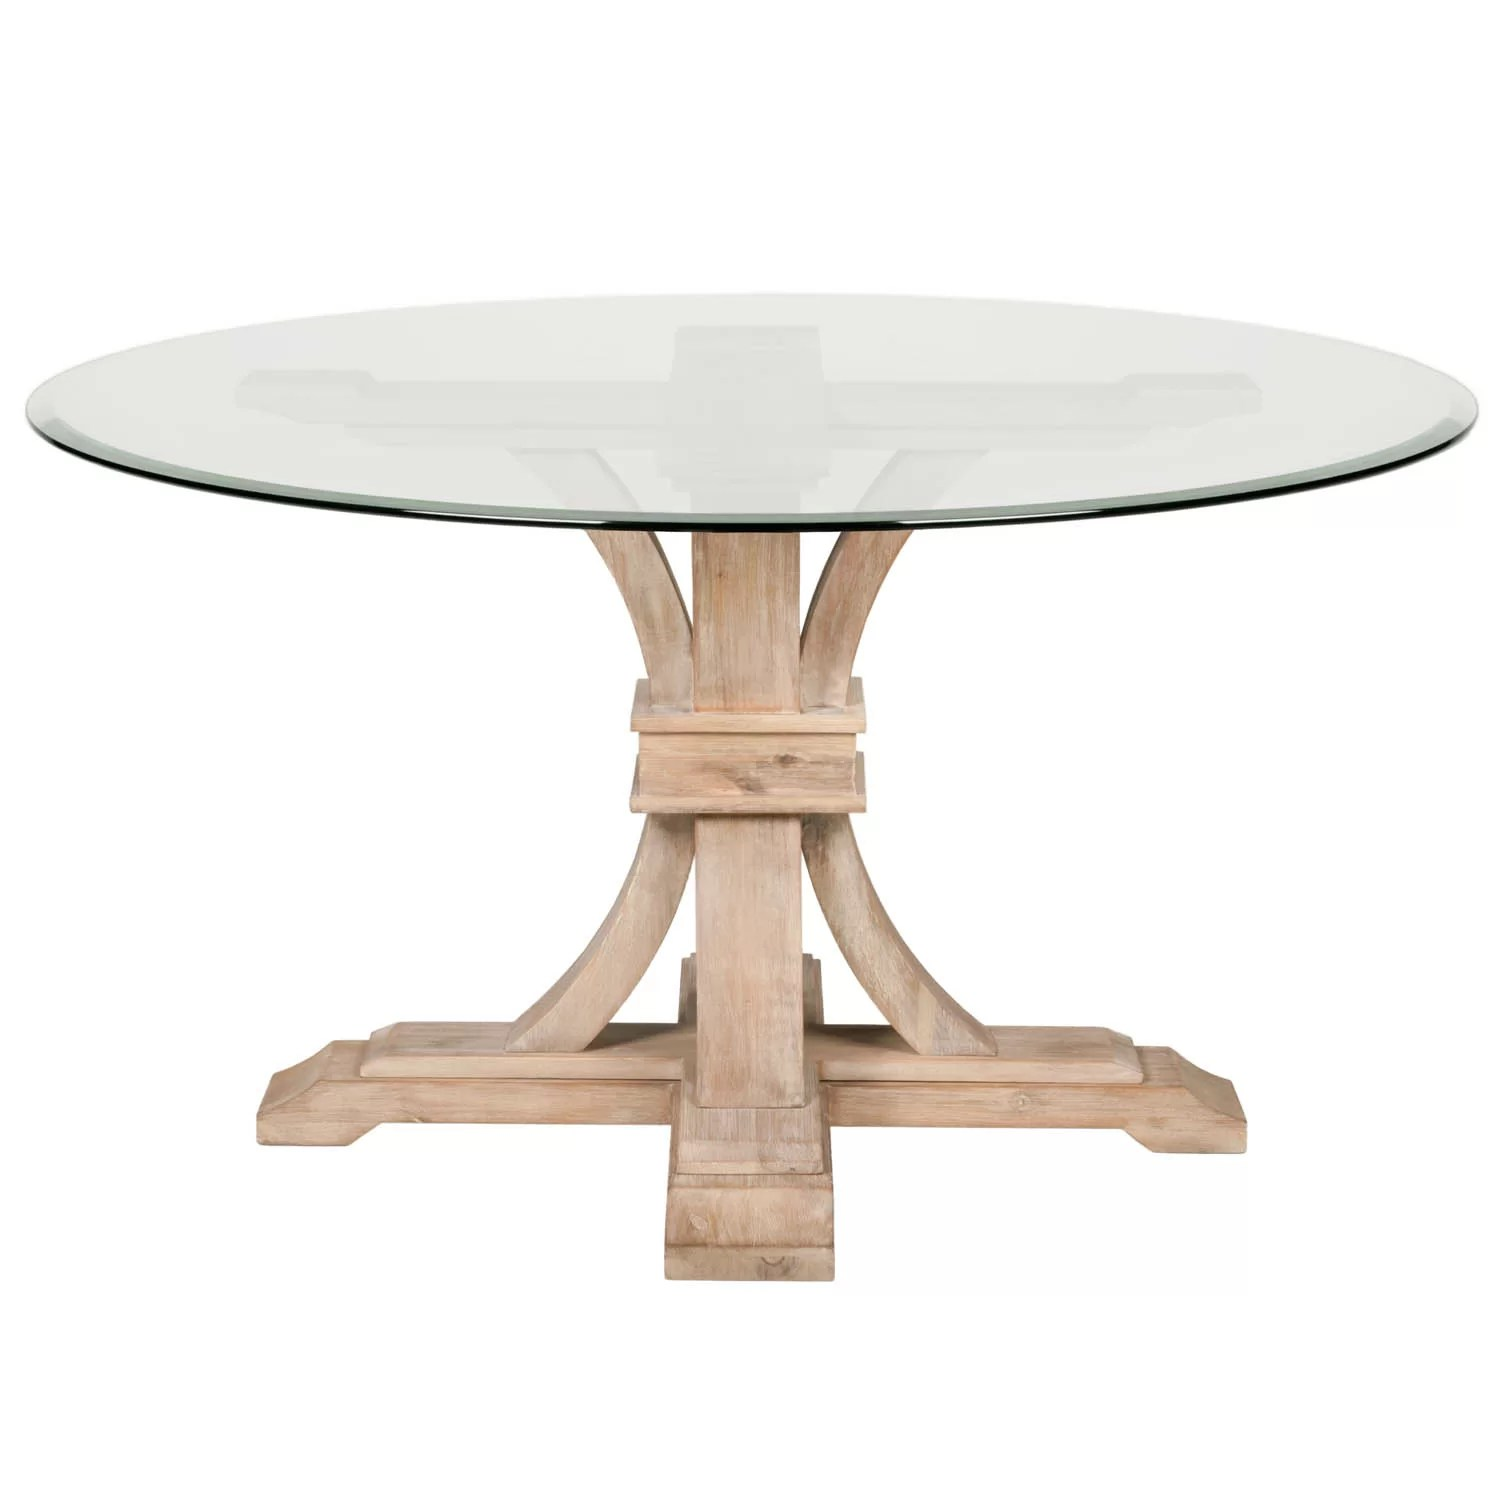 Round Glass Dining Table One Allium Way Montcerf 54 Quot Round Glass Dining Table